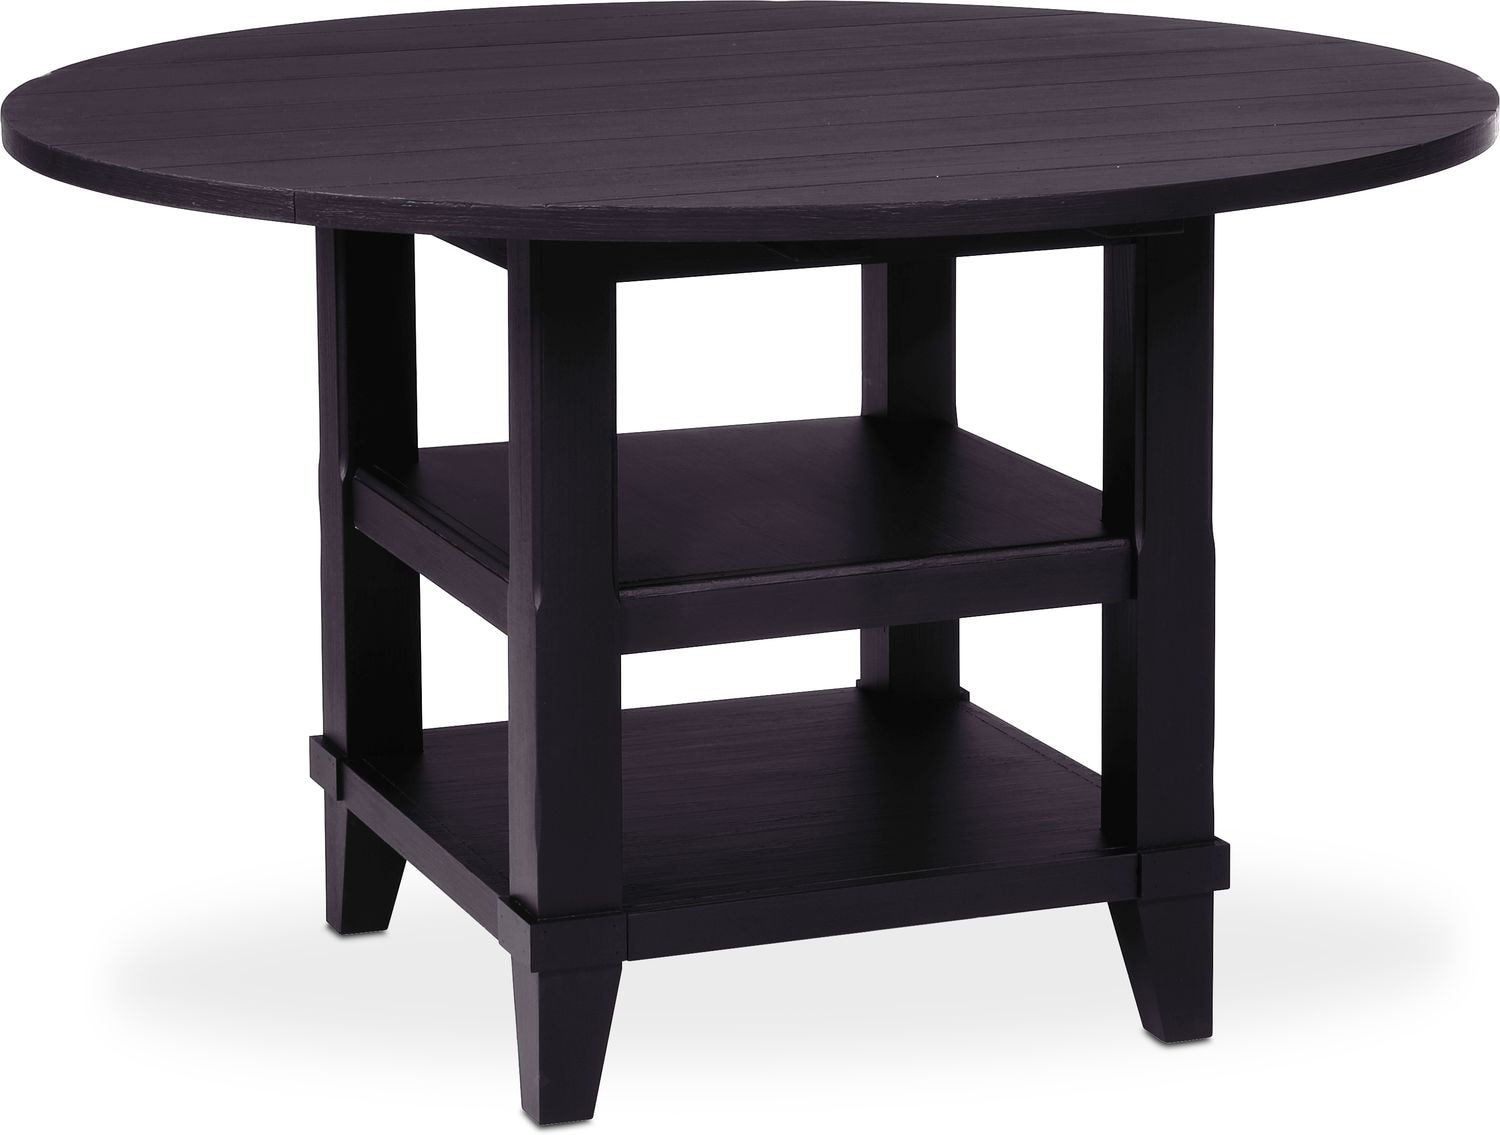 No ReviewsWrite the First Review · Dining Room Furniture - New Haven Round Drop-Leaf Dining Table ...  sc 1 st  American Signature Furniture & New Haven Round Drop-Leaf Dining Table - Black | American Signature ...